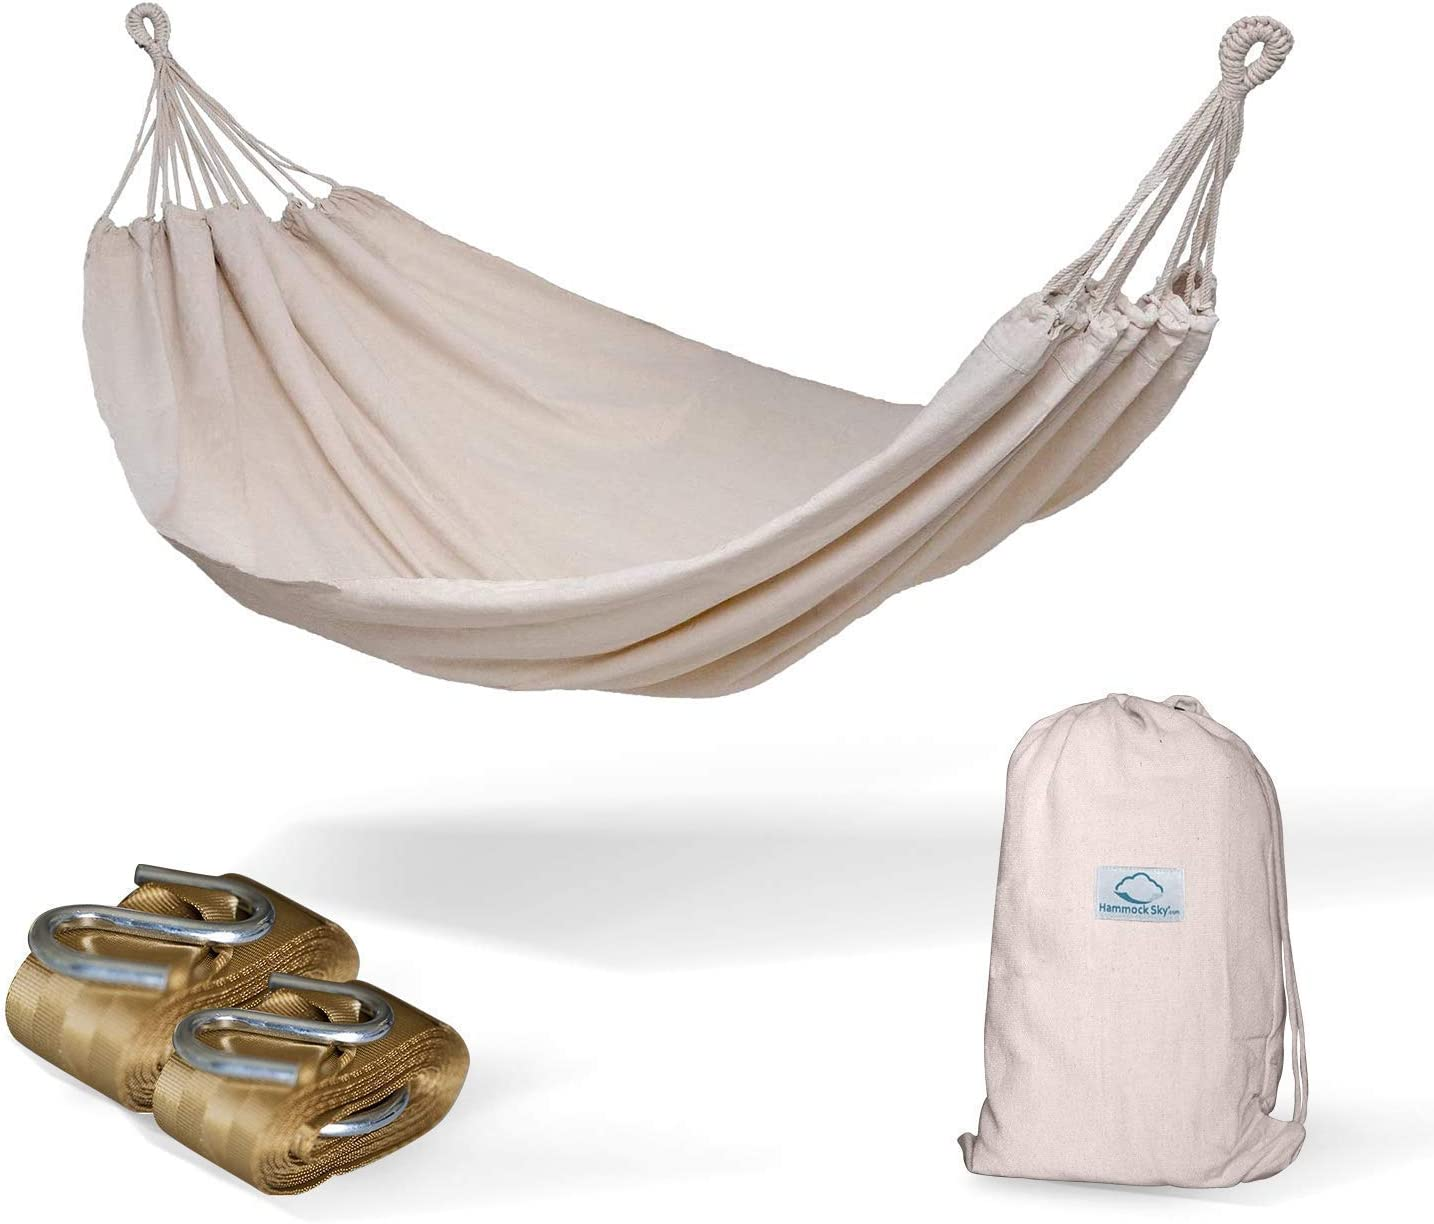 Hammock Sky Brazilian Double Hammock (Natural) with Tree Straps (Gold) - Two Person Hammock with Best Extra Long Hanging Straps 2 Pack